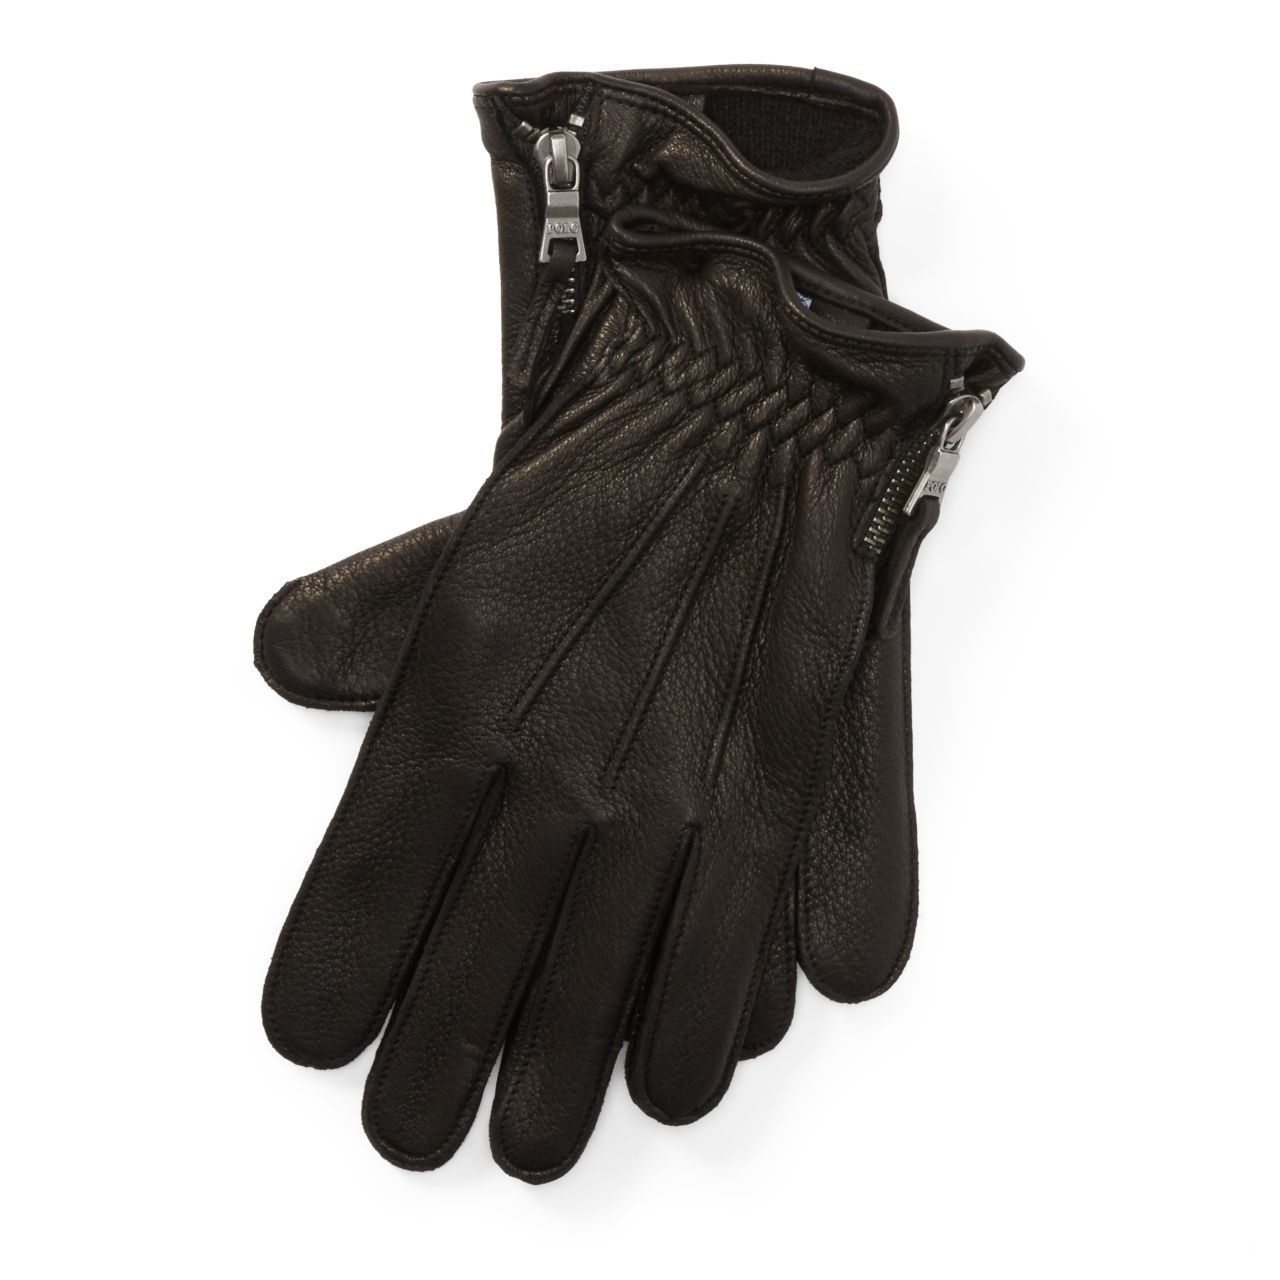 ◎送料込み◎Side-Zip Deerskin Gloves